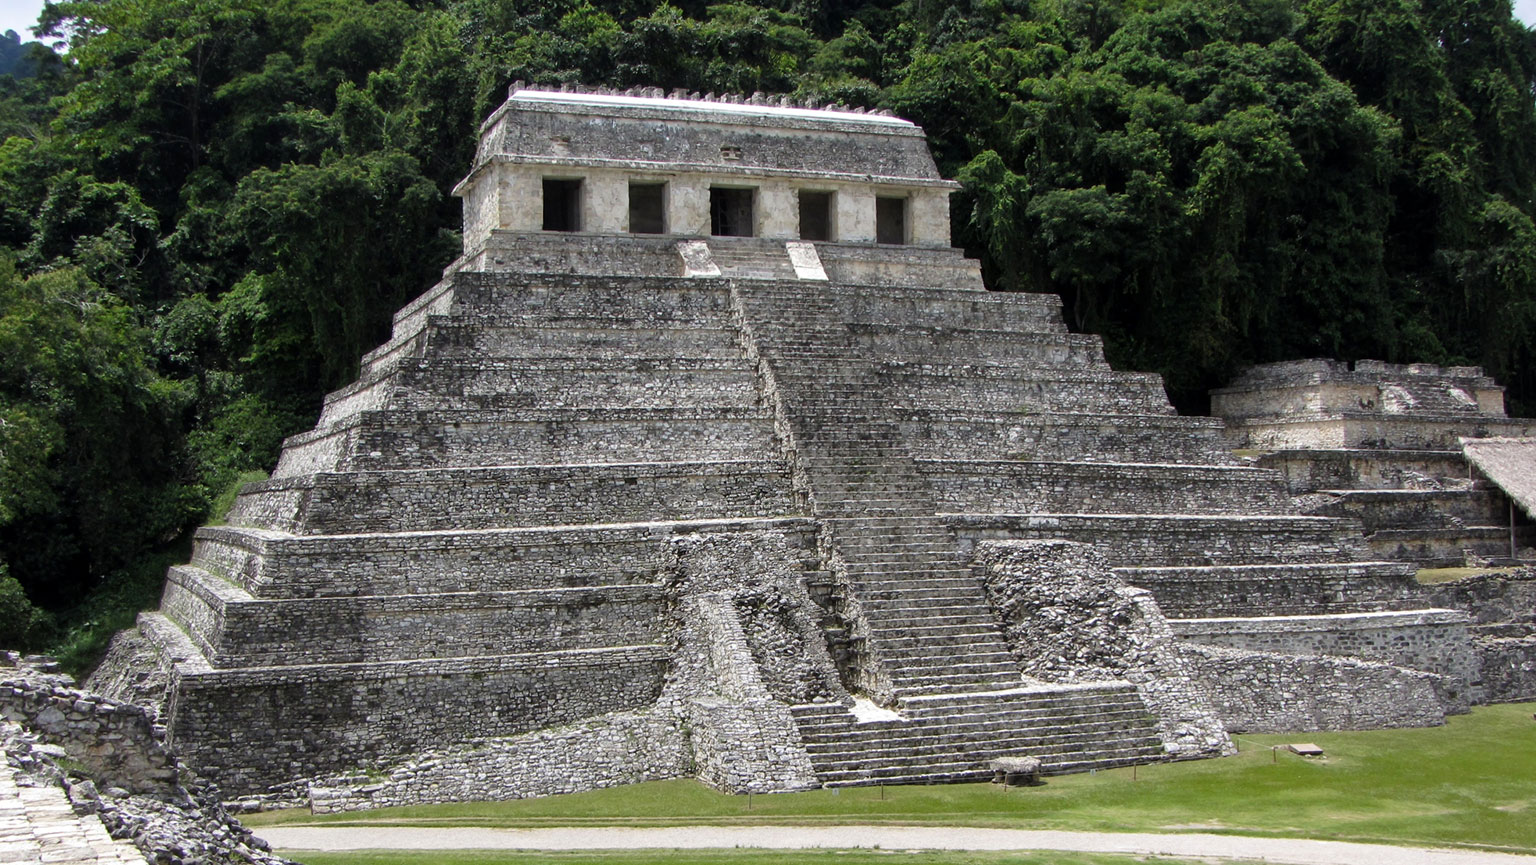 Palenque—Jewel in the West